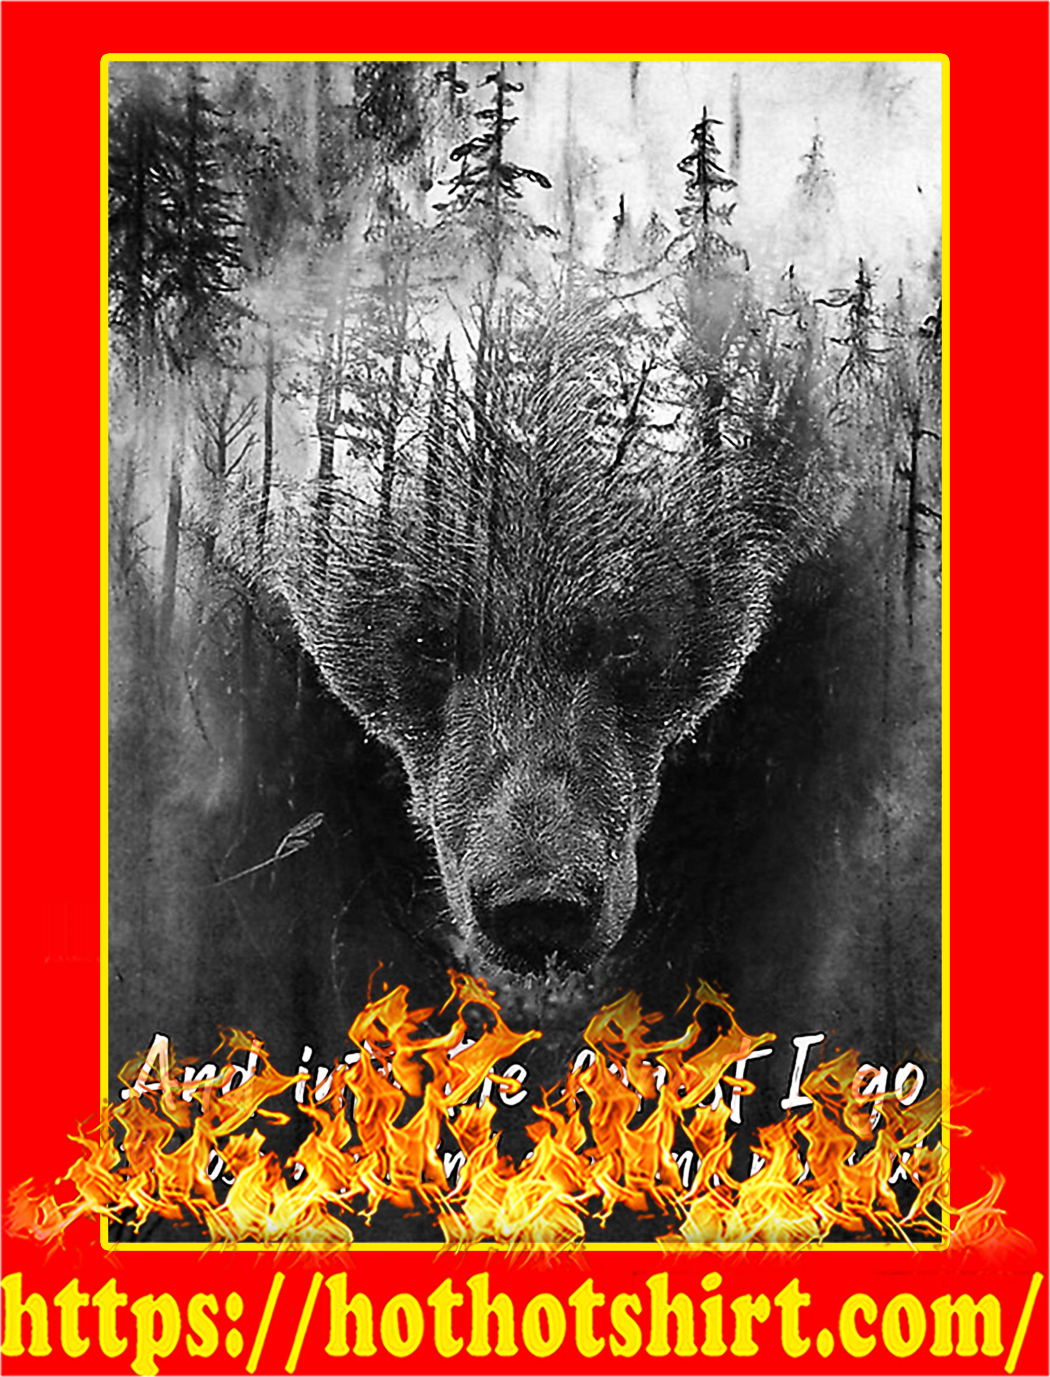 Bear and into the forest I go poster - A2